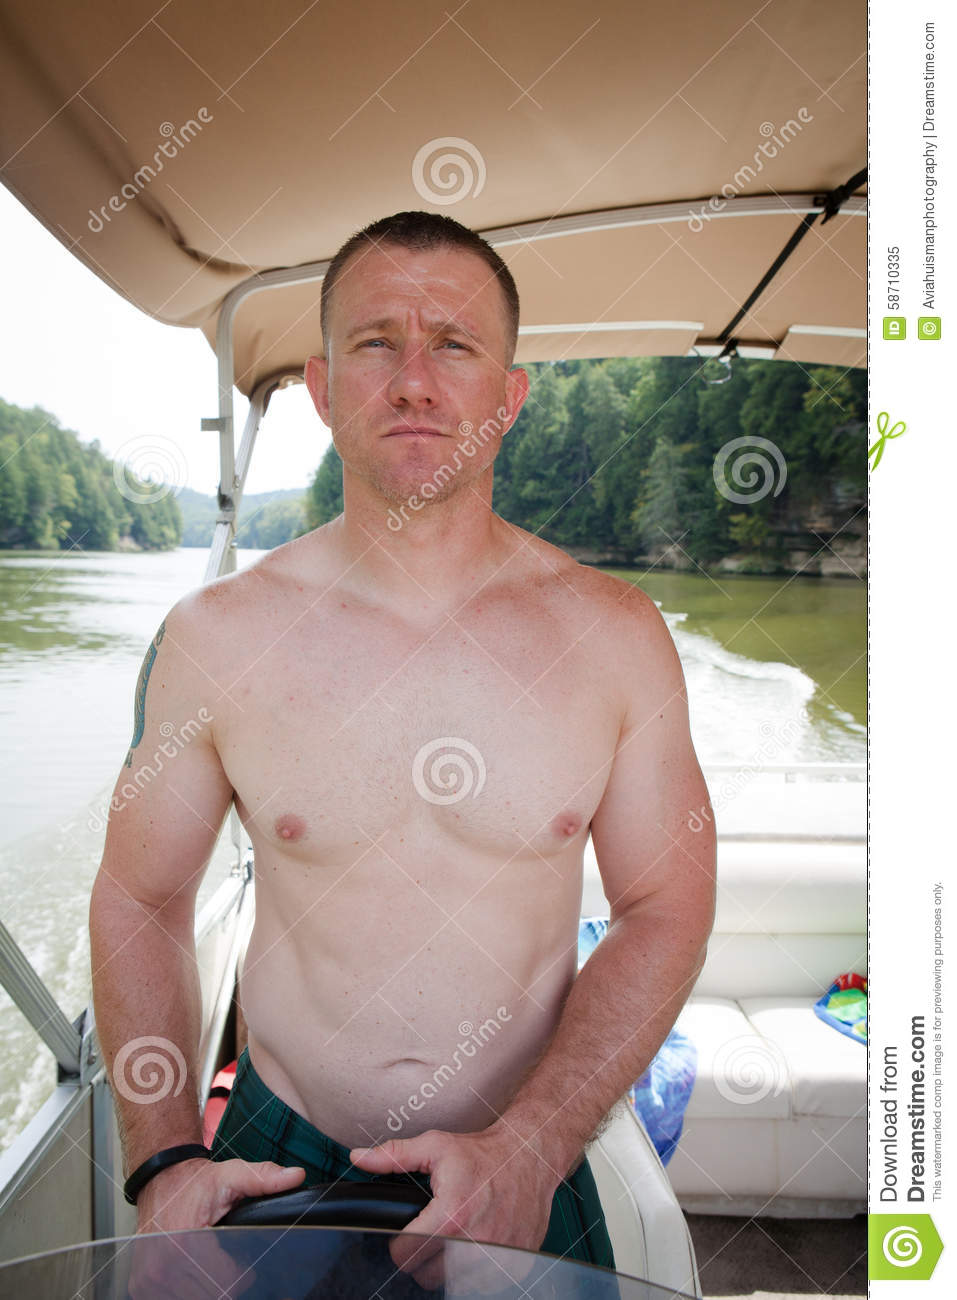 Boater: Man Driving a Boat